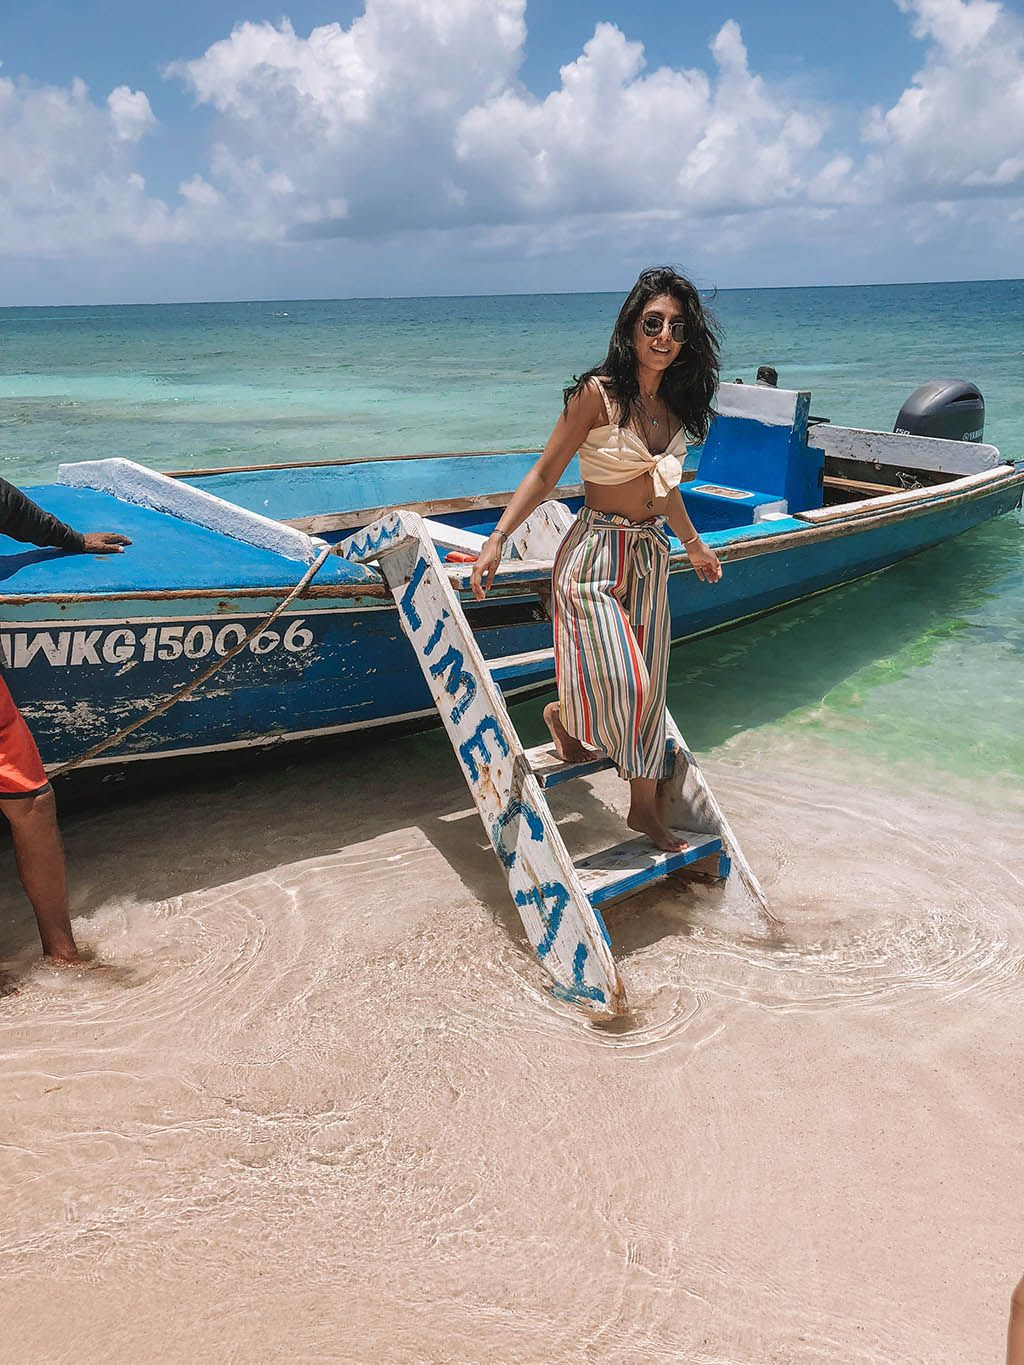 d36da29ef04 Fashion blogger Shloka Narang of The Silk Sneaker shares cute summer outfits  for 2018 from her latest trip to Jamaica featuring Topshop